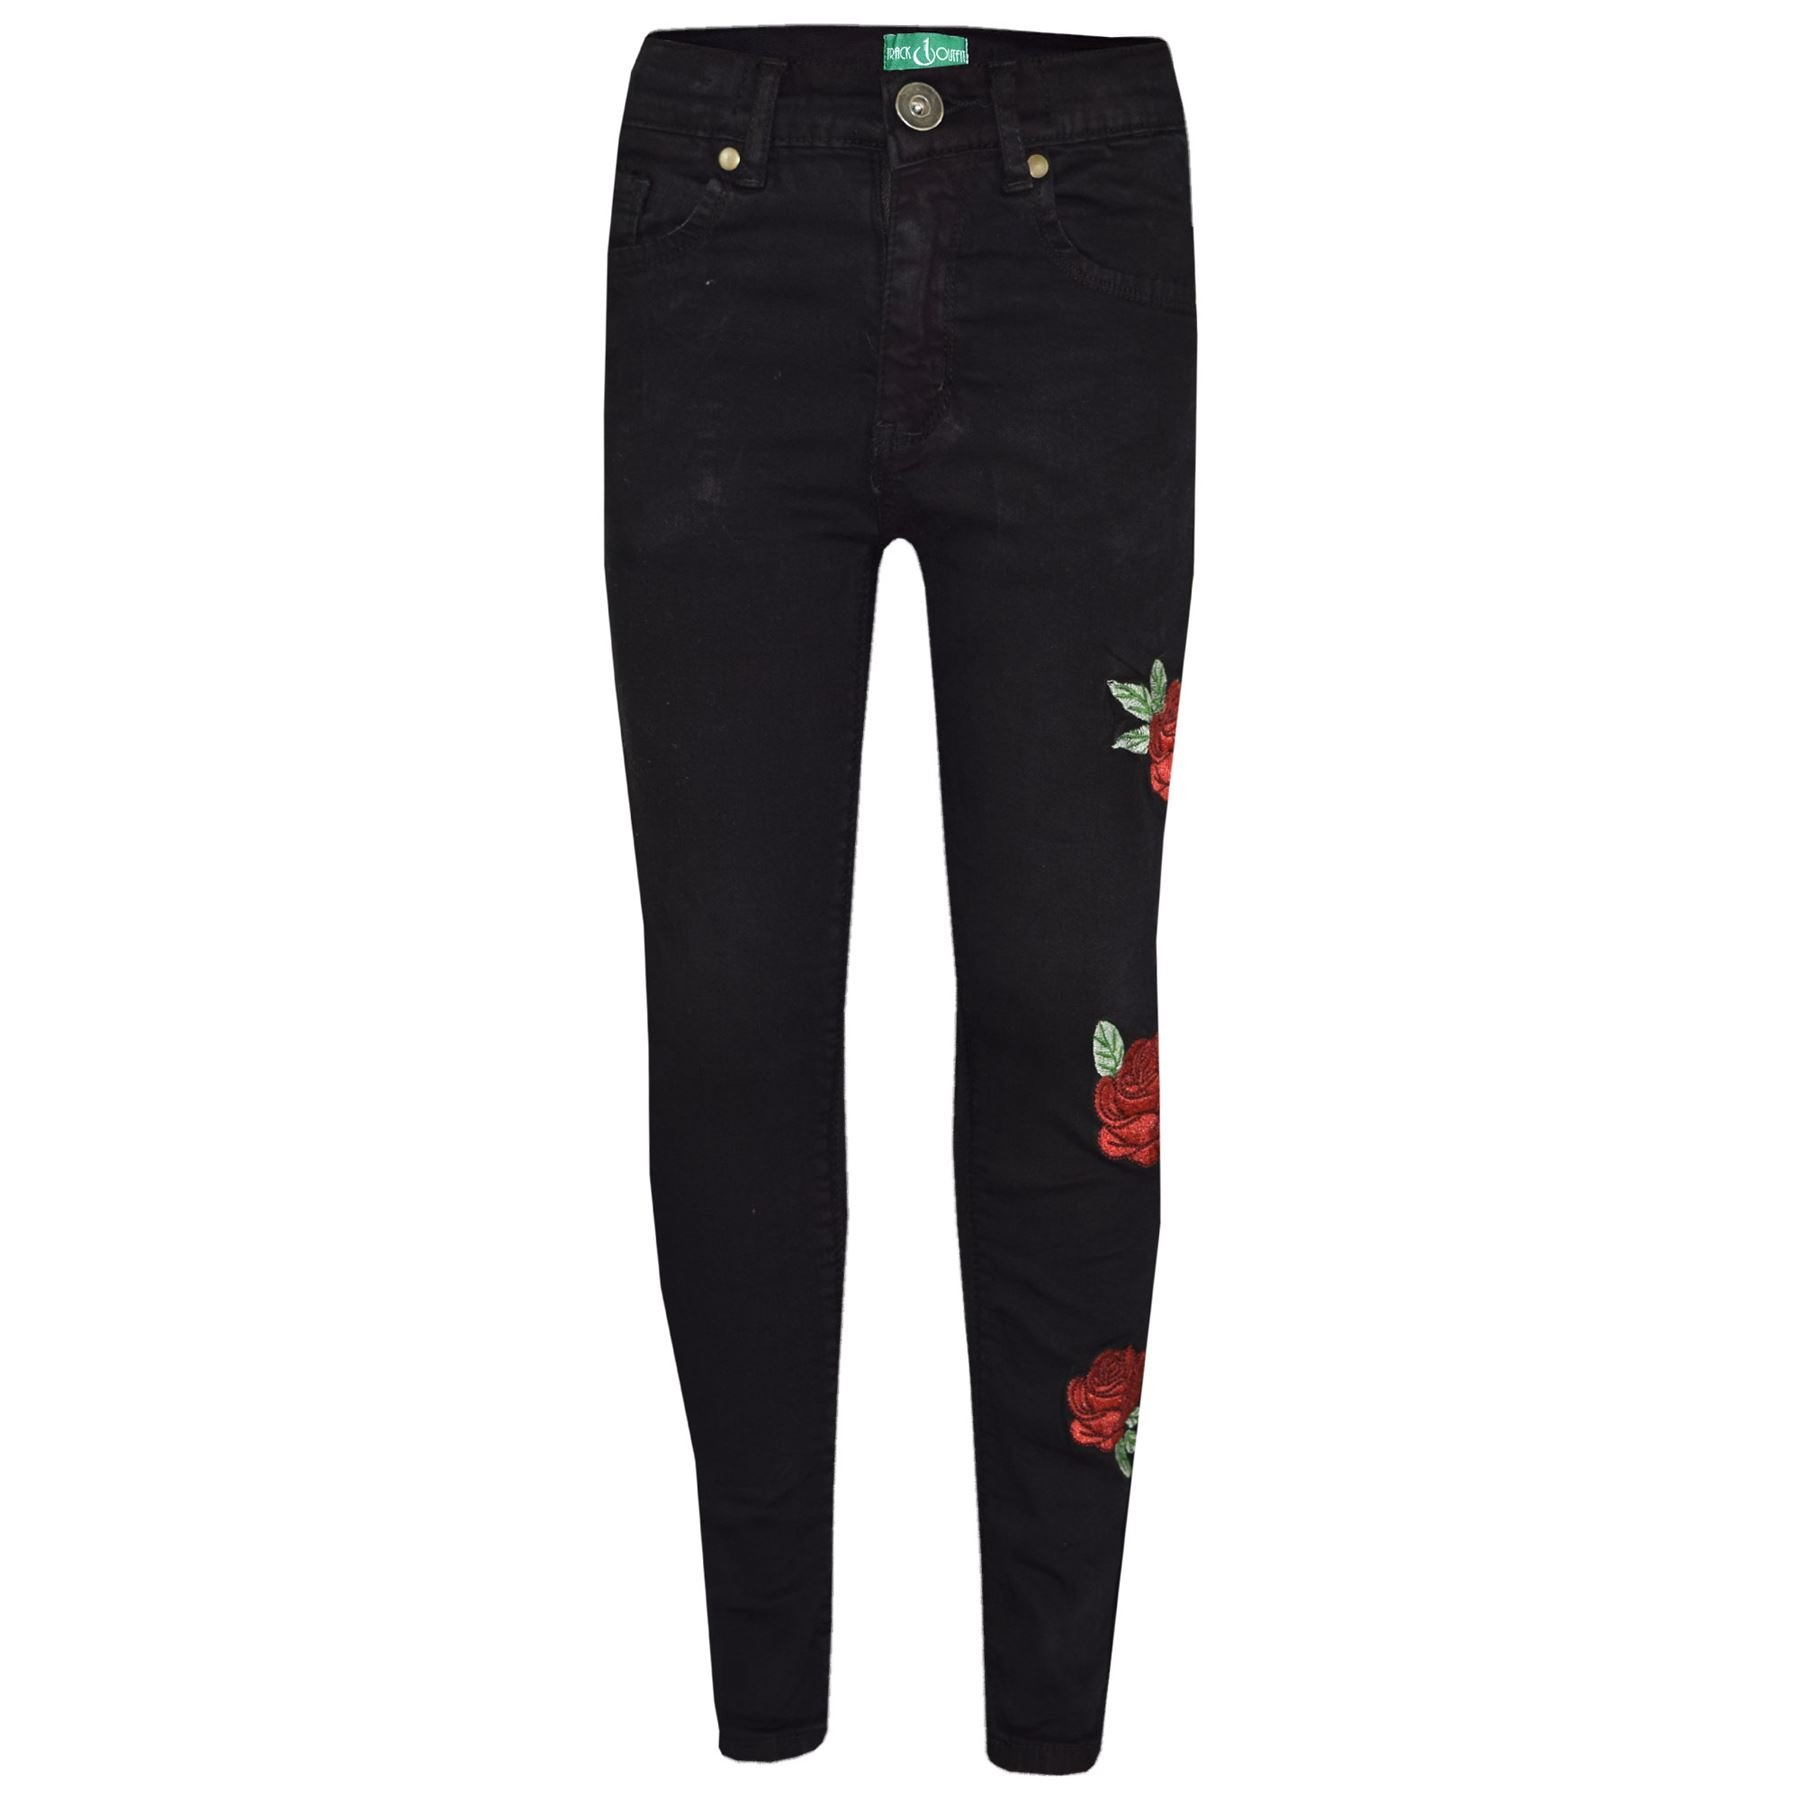 Girls Stretchy Jeans Kids Rose Print Denim Pants Trousers Jeggings 5-13 Years